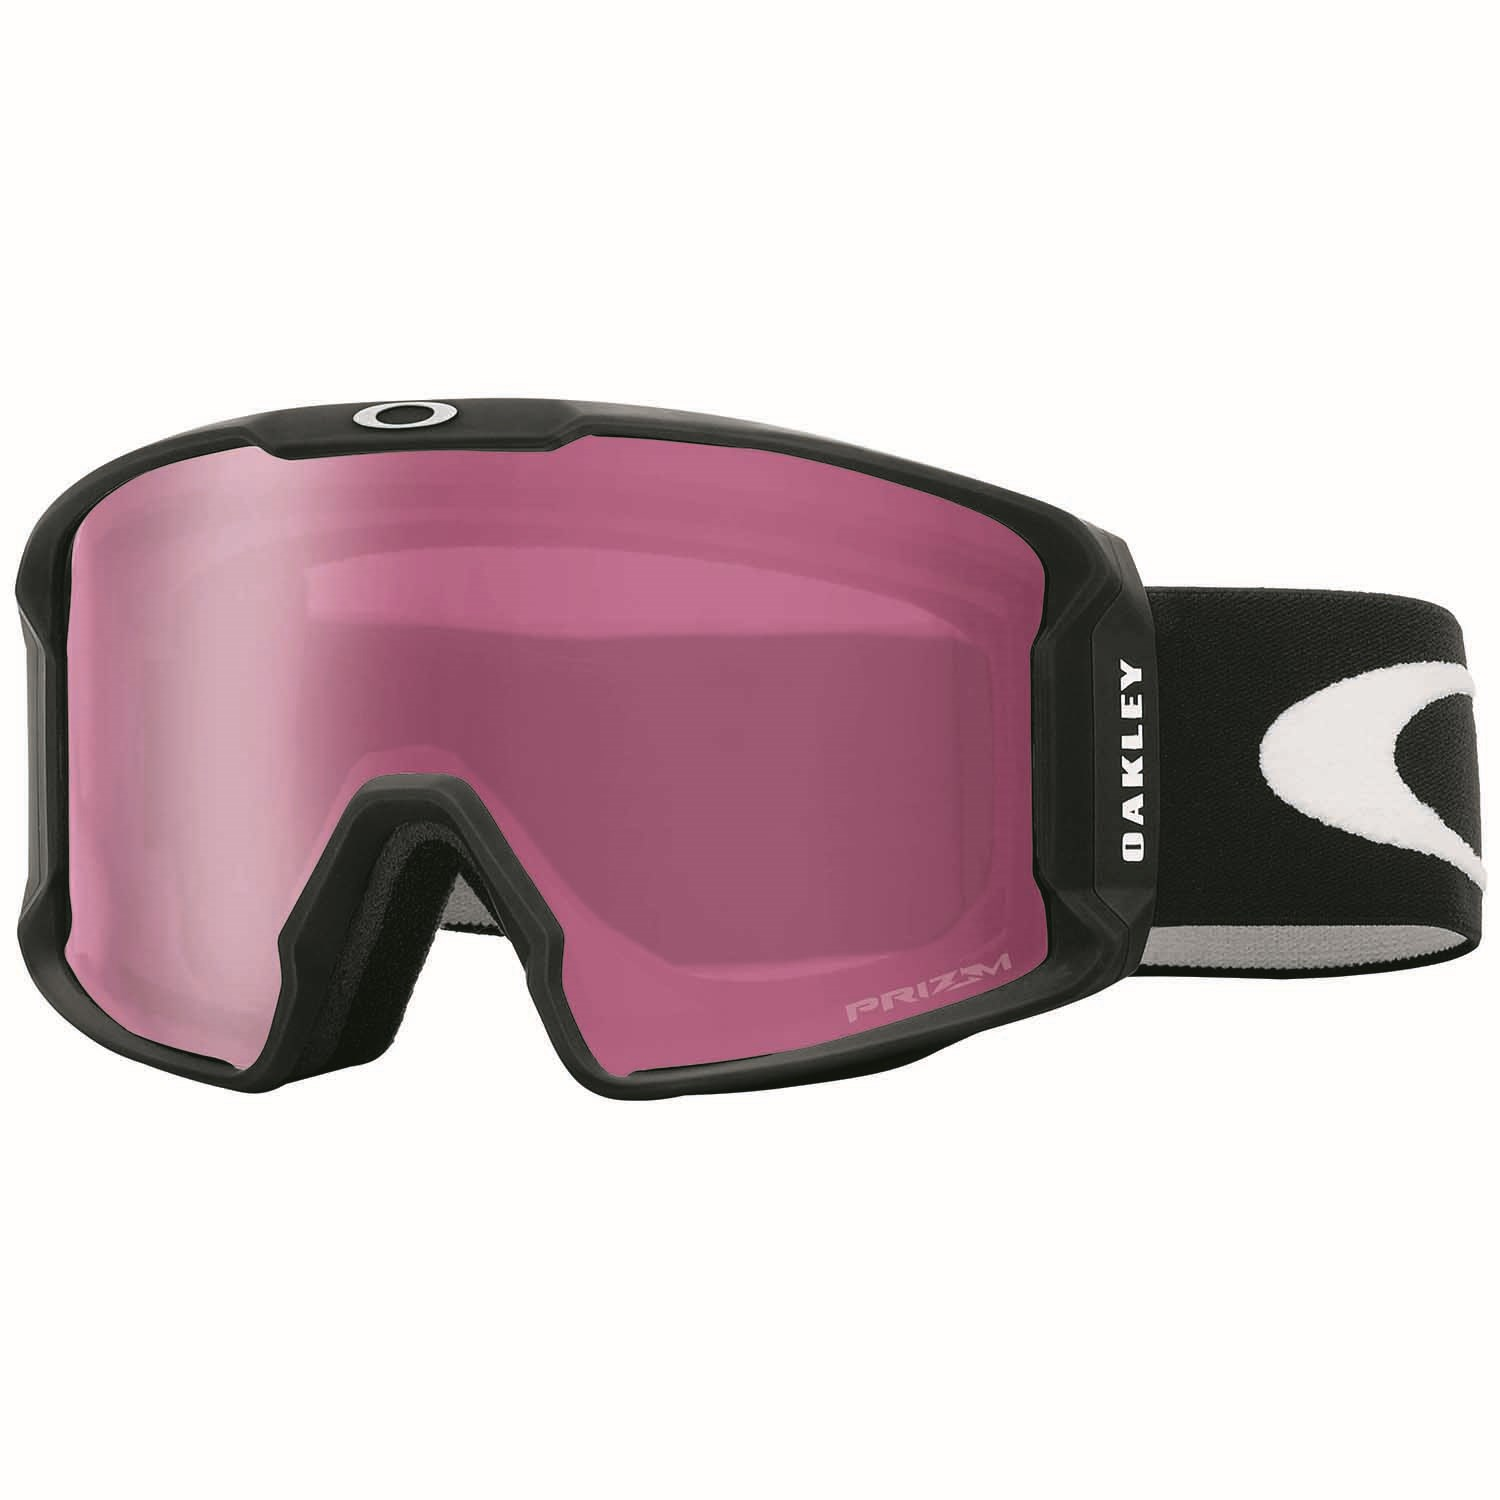 oakley ski goggles on sale  oakley line miner inferno goggles $220.00 $250.00 $165.99 $187.99 sale